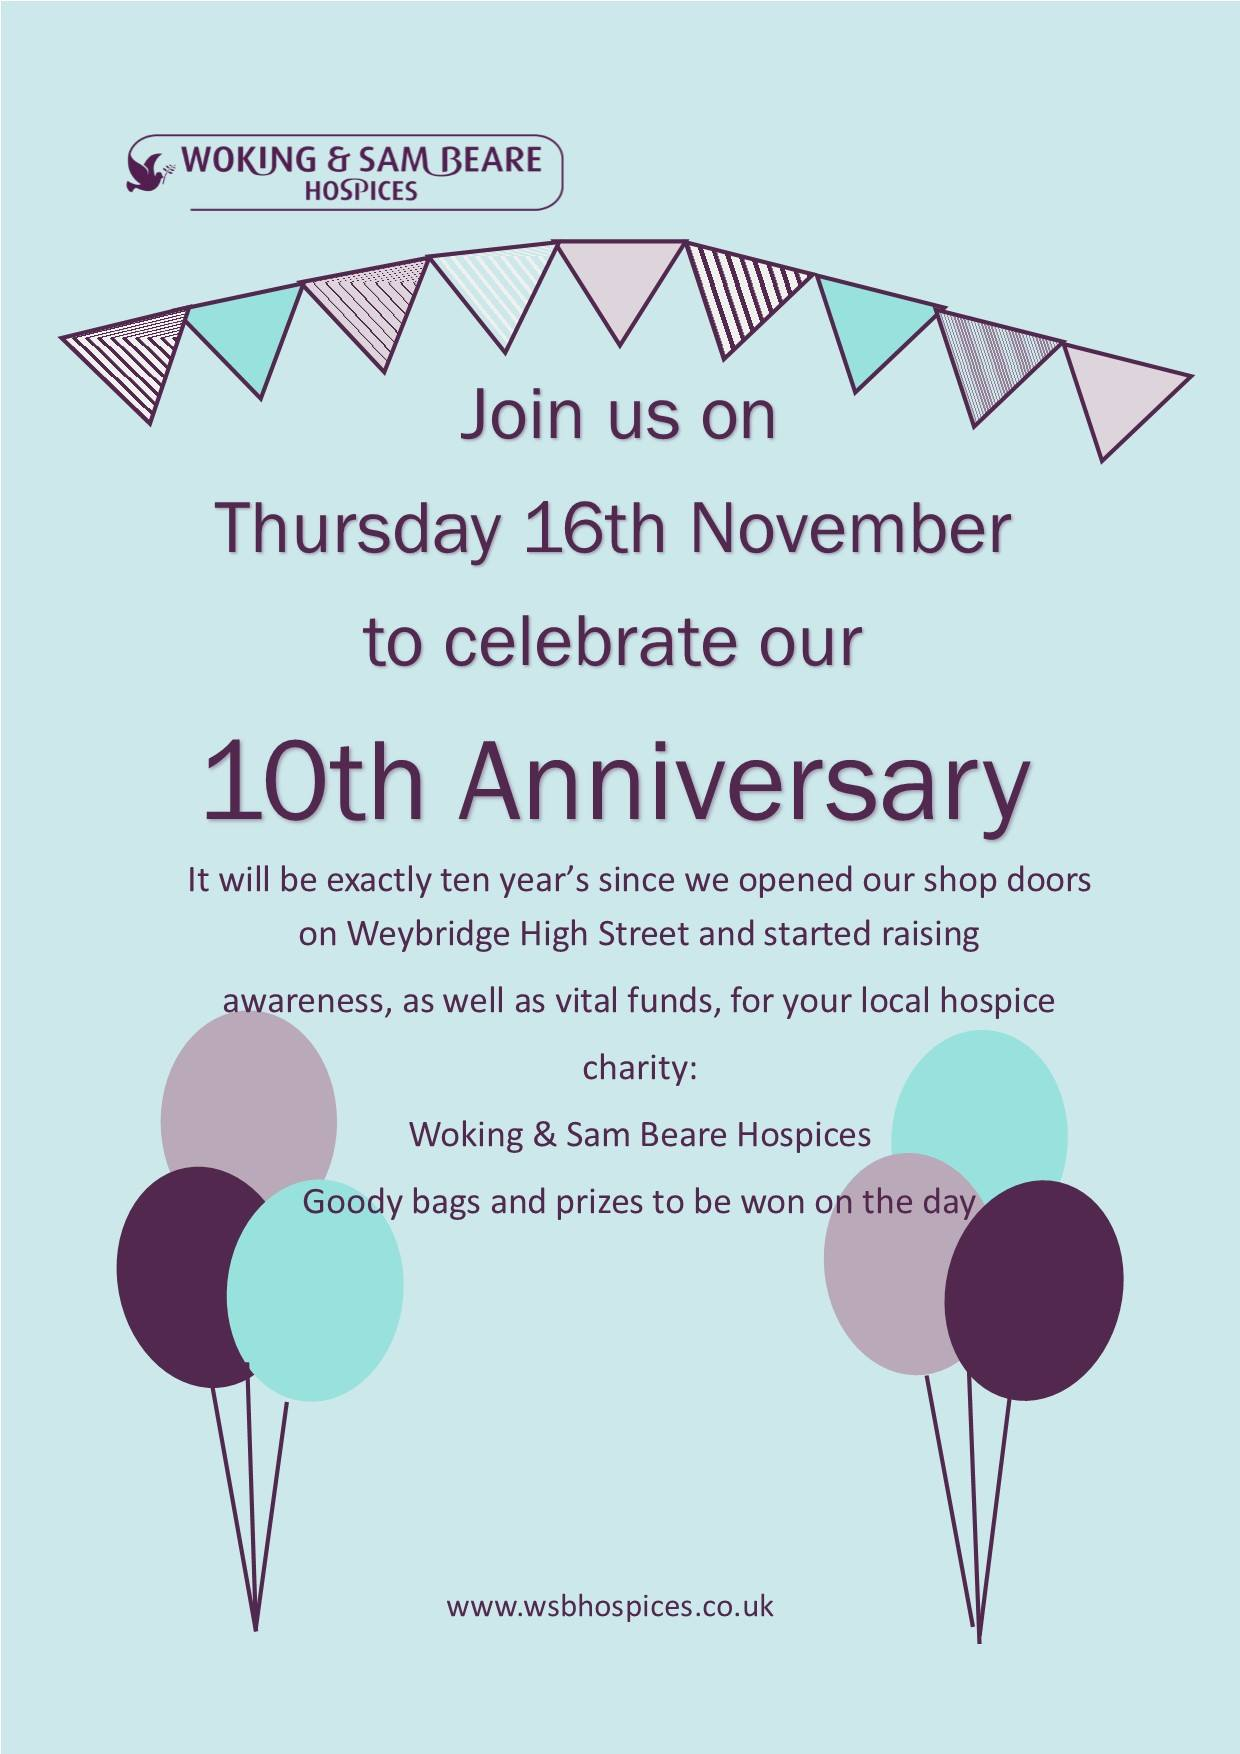 Visit our Weybridge shops to help them celebrate their 10th anniversary both shops opened their doors in 2007 !